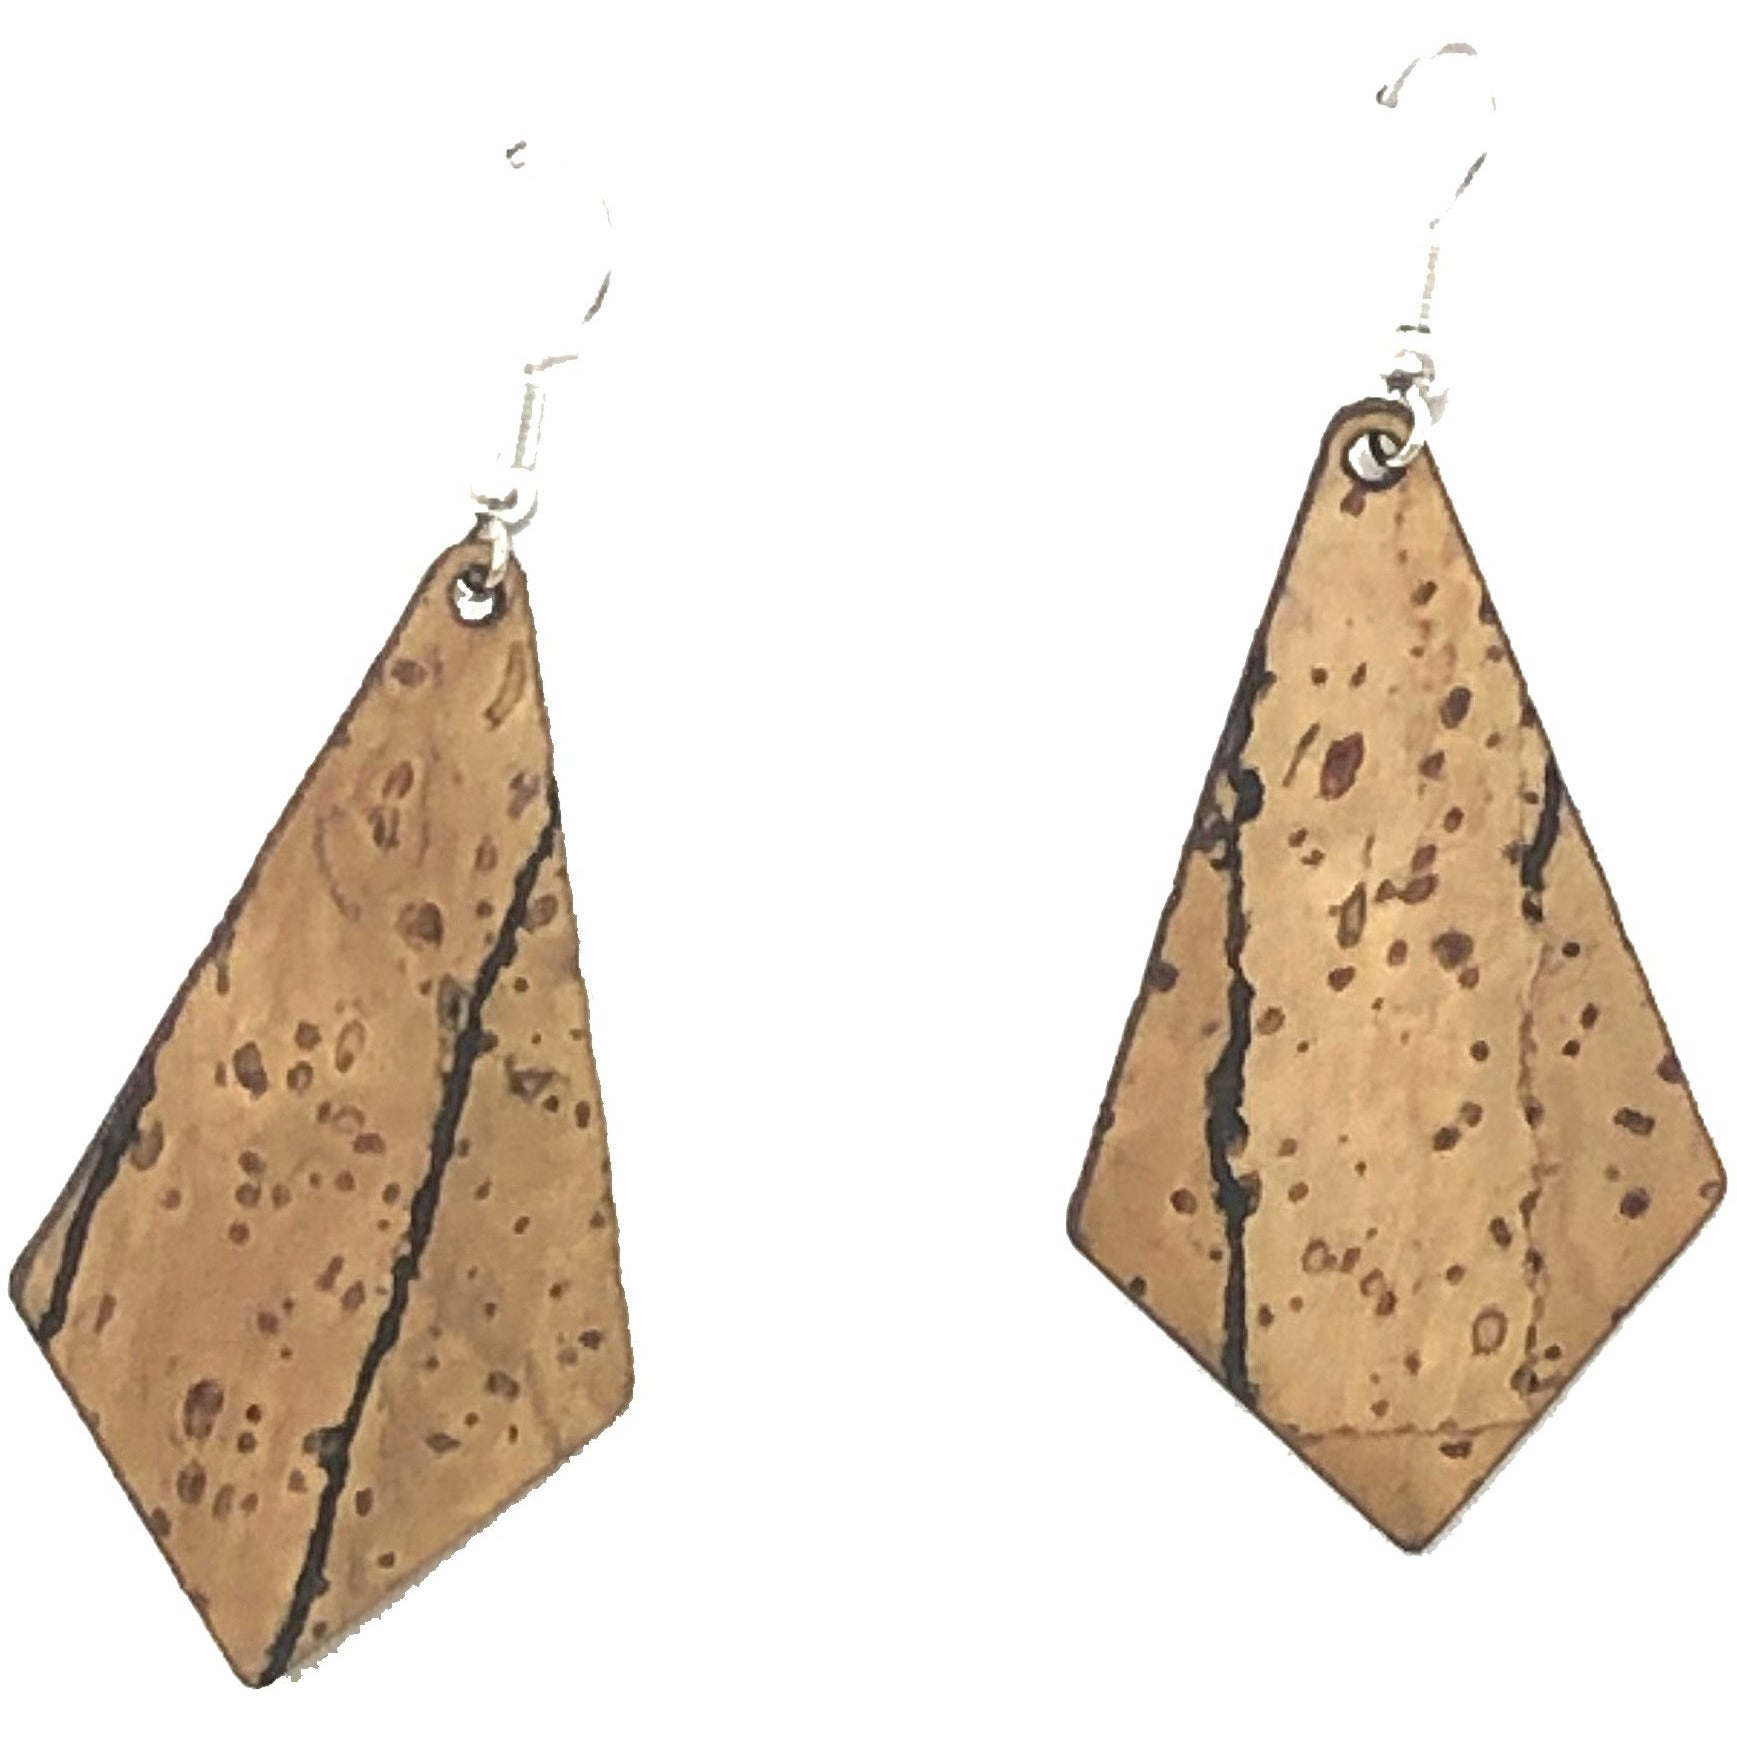 Cork Geometric Earrings - Double Sided Cork